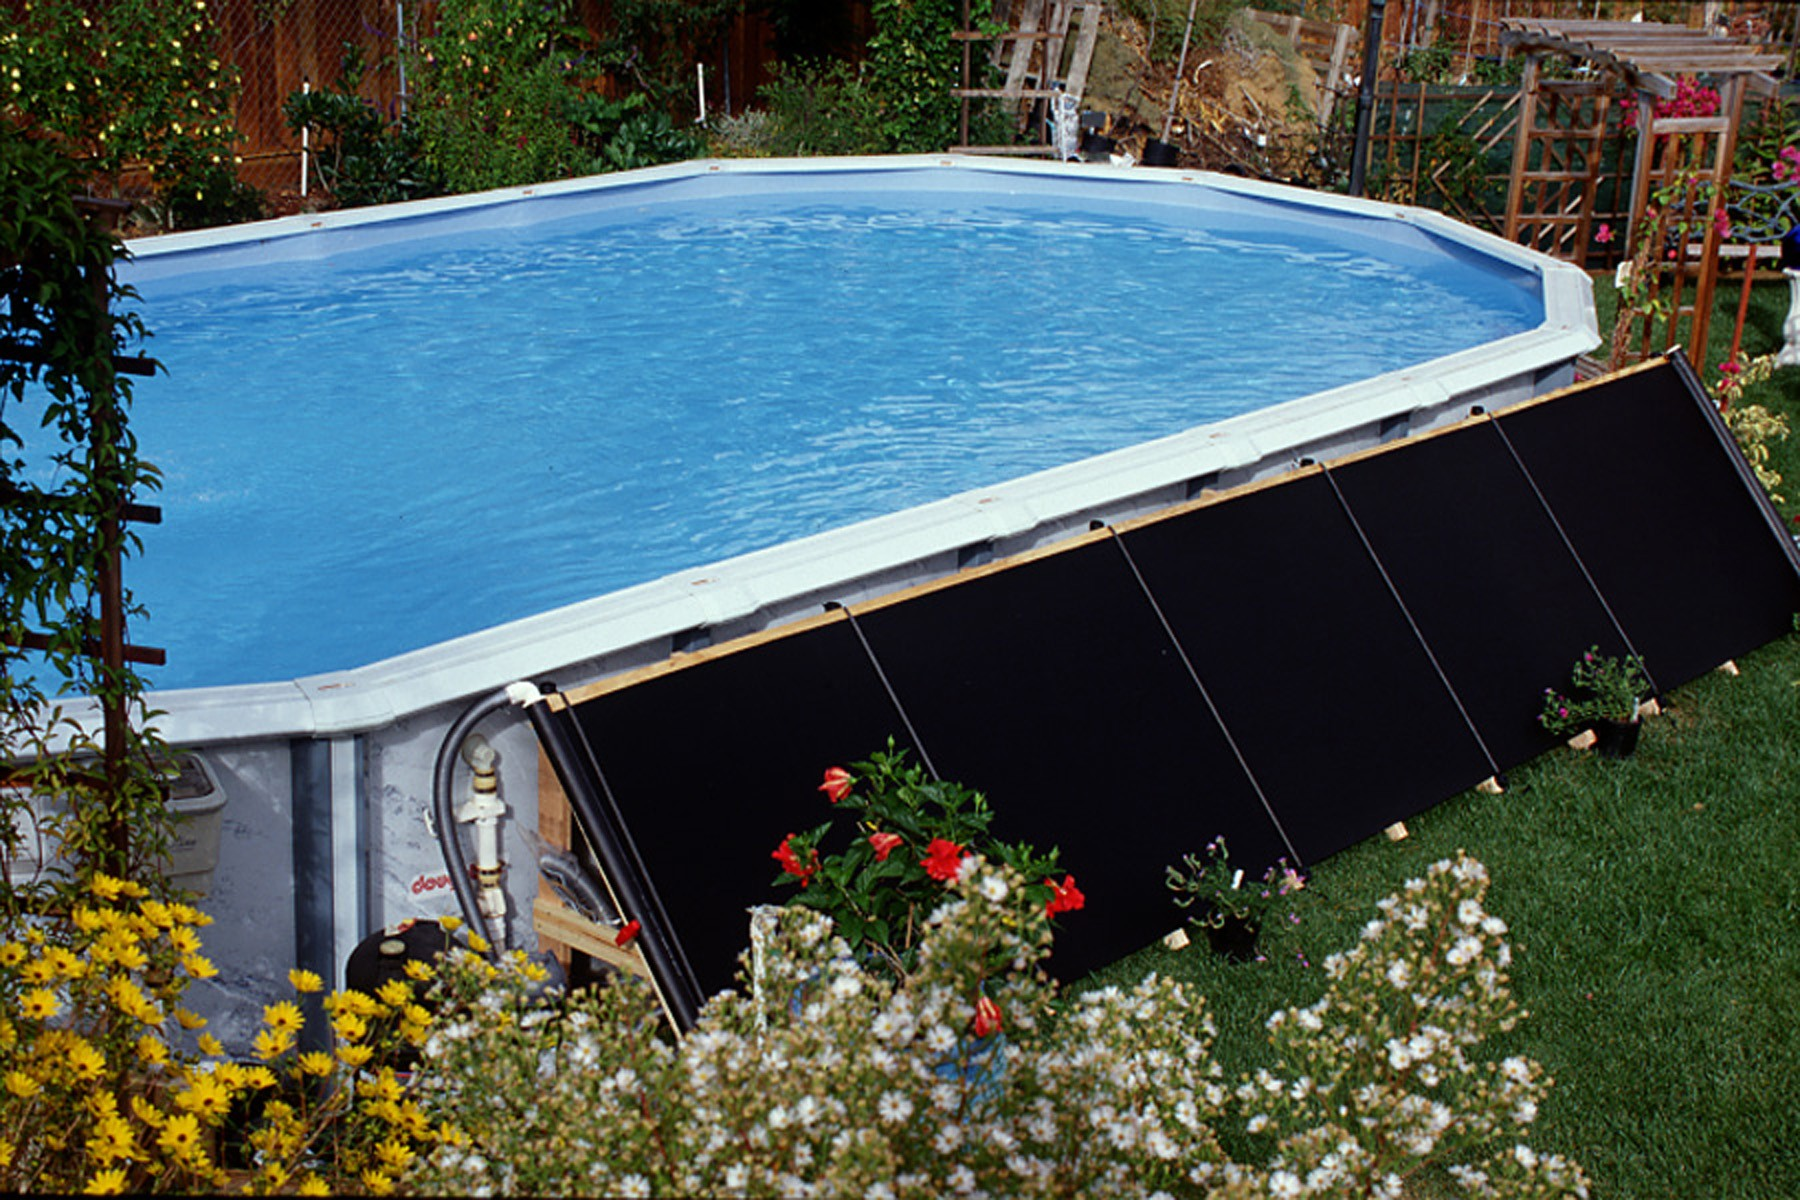 Fafco Bear Solar Pool Heaters Feature Premium Quality Superior Technology Highest Rated